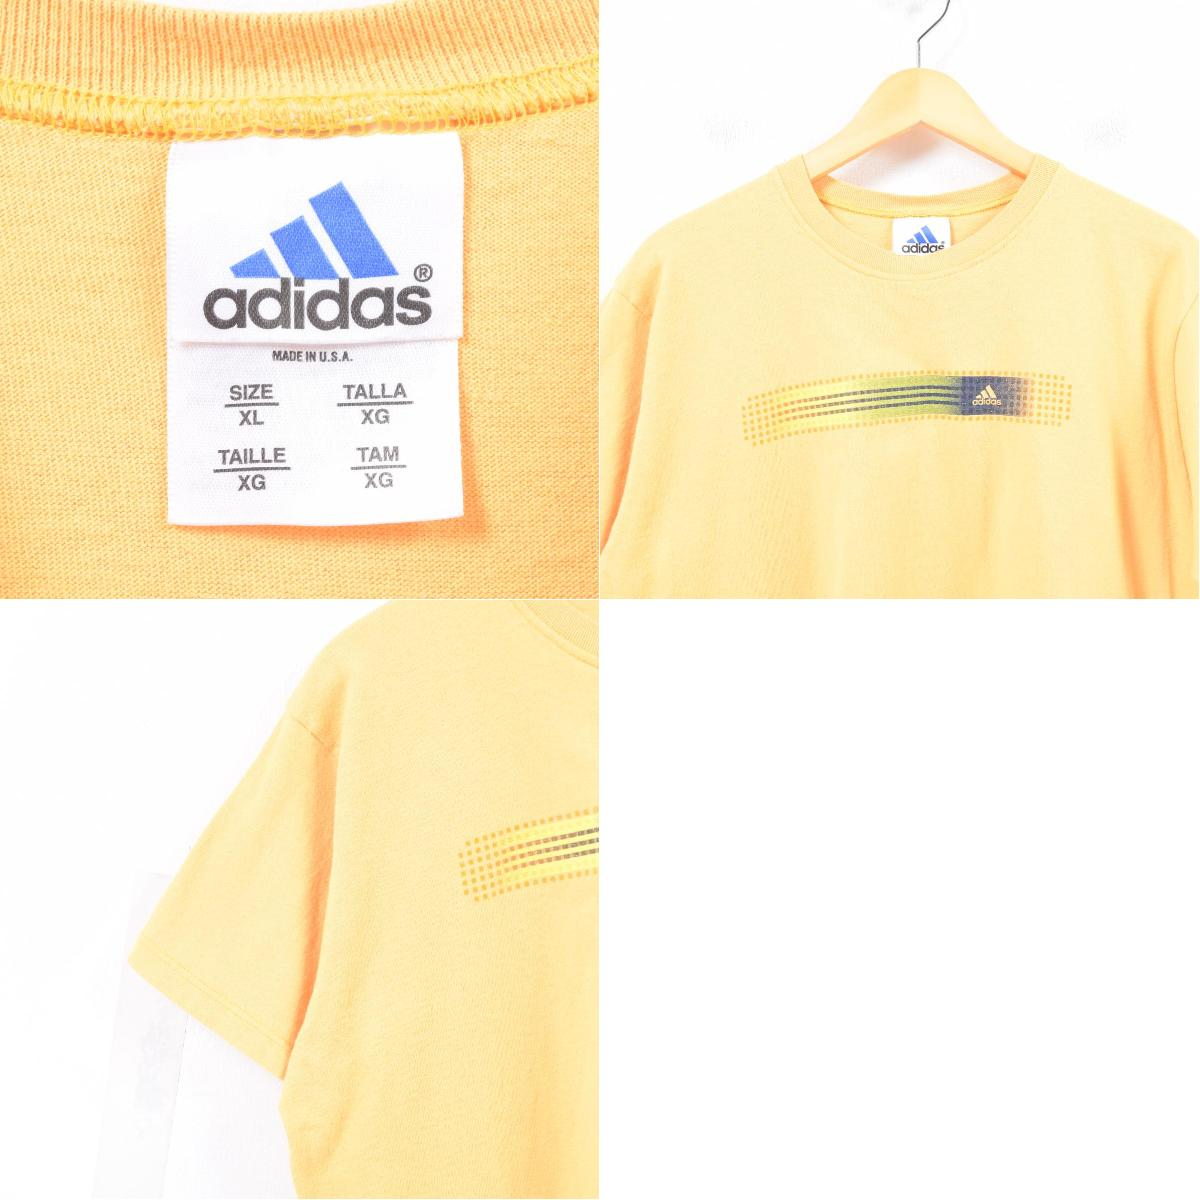 4f52838c4 ... Men L /was5104 in the 90s made in Adidas adidas logo T-shirt USA